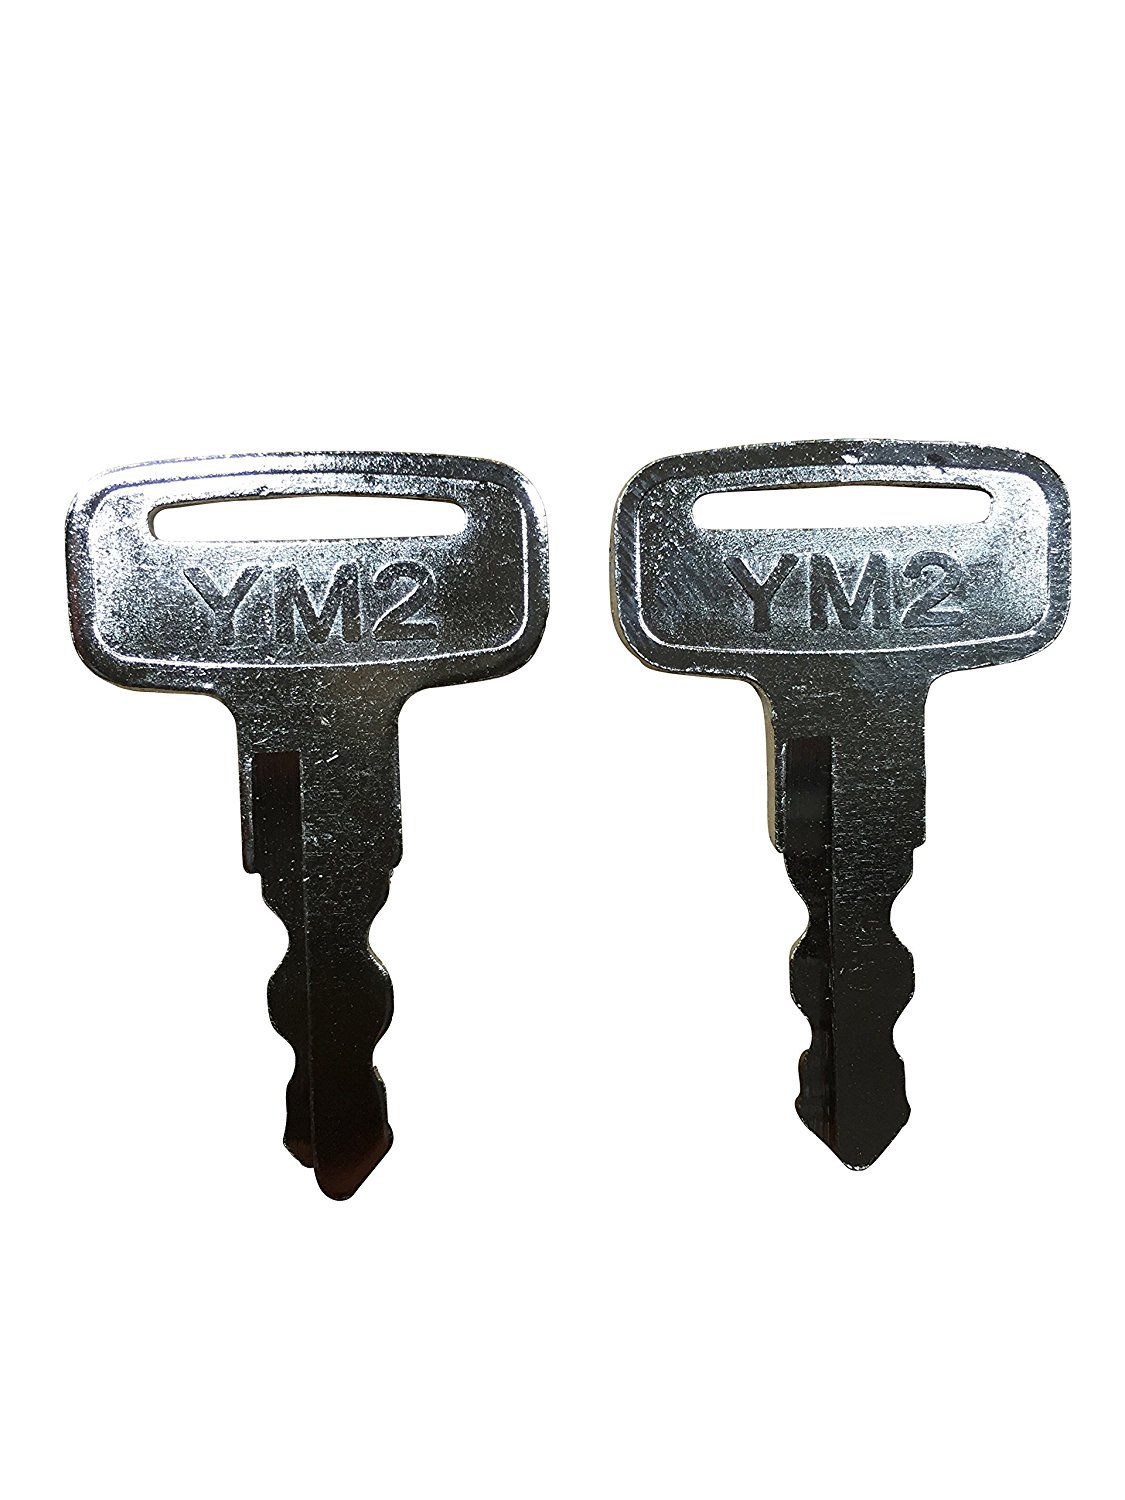 (2) Yamaha Golf Cart Keys - OEM Replacement for G14,G16,G19,G22,G29/Drive Gas/Electric Golf Cars - 2 Pack